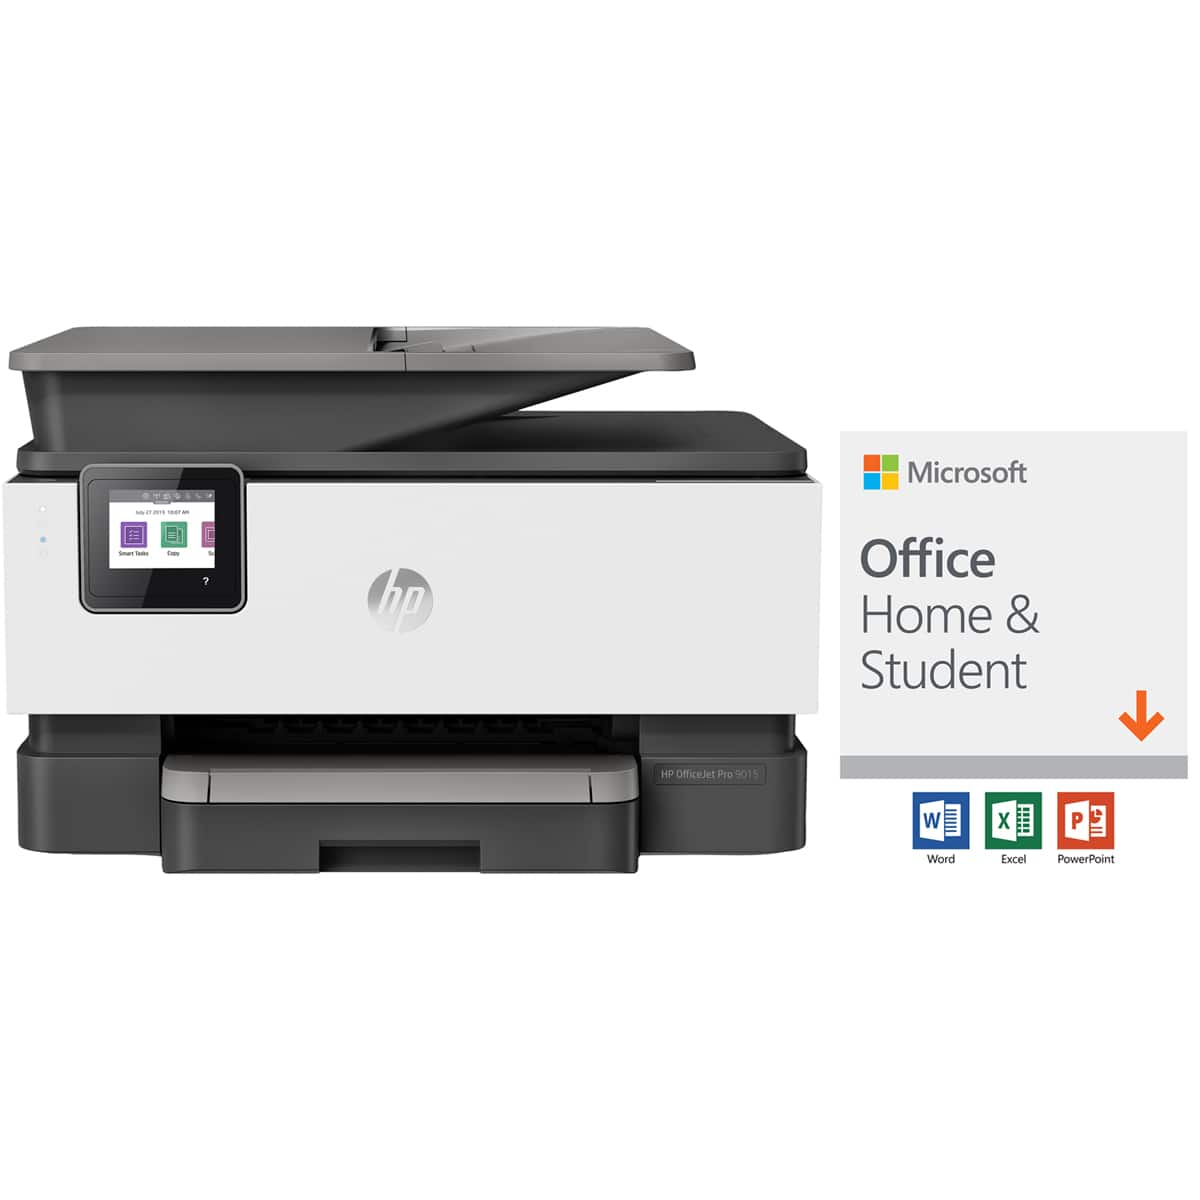 HP Officejet Pro 9015 Wireless All-in-One Color Inkjet Printer with Microsoft Office Home and Student 2019 $219.98 + $30 Newegg Gift Card